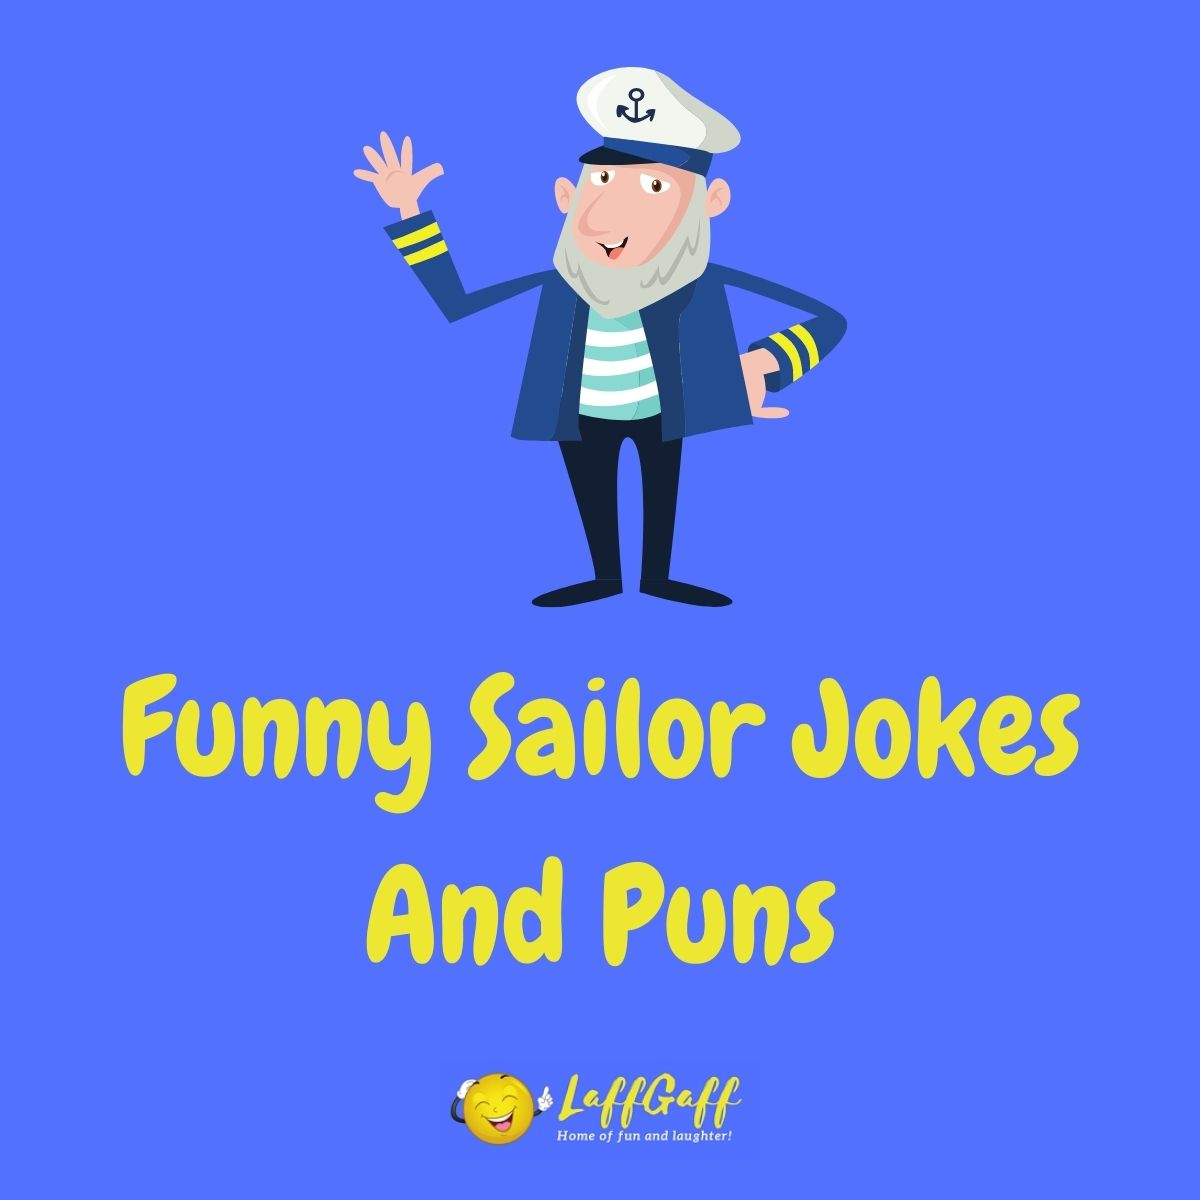 Featured image for a page of funny sailor jokes and puns.